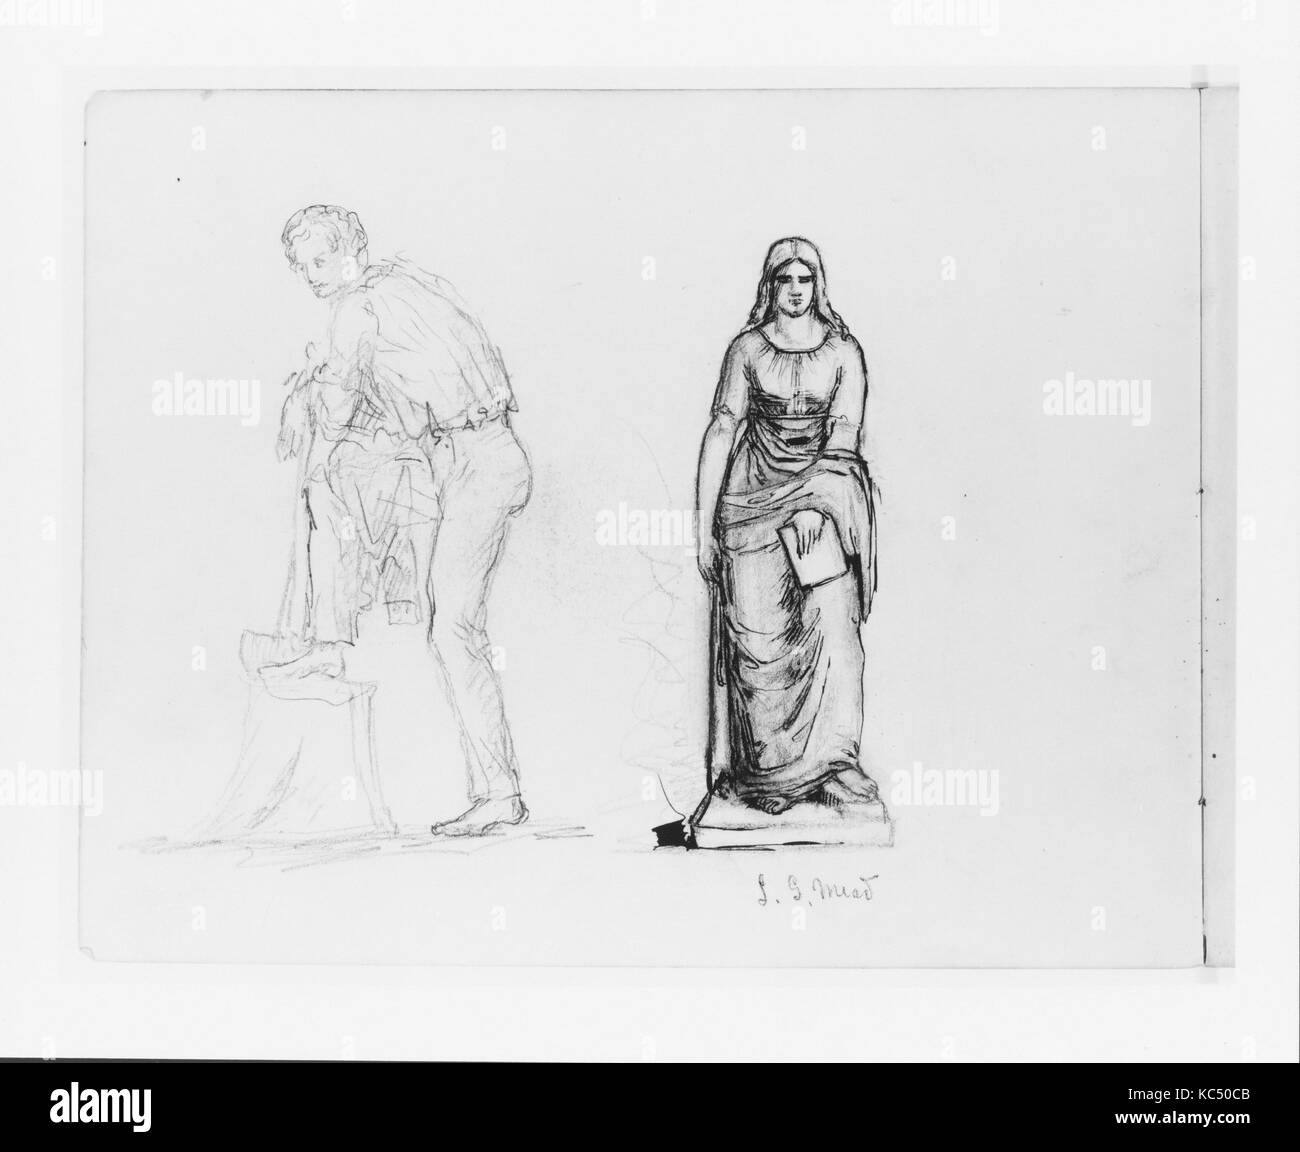 https://www alamy com/stock-image-full-length-sketch-of-a-male-figure-study-of-a-sculpture-of-a-female-162379291 html